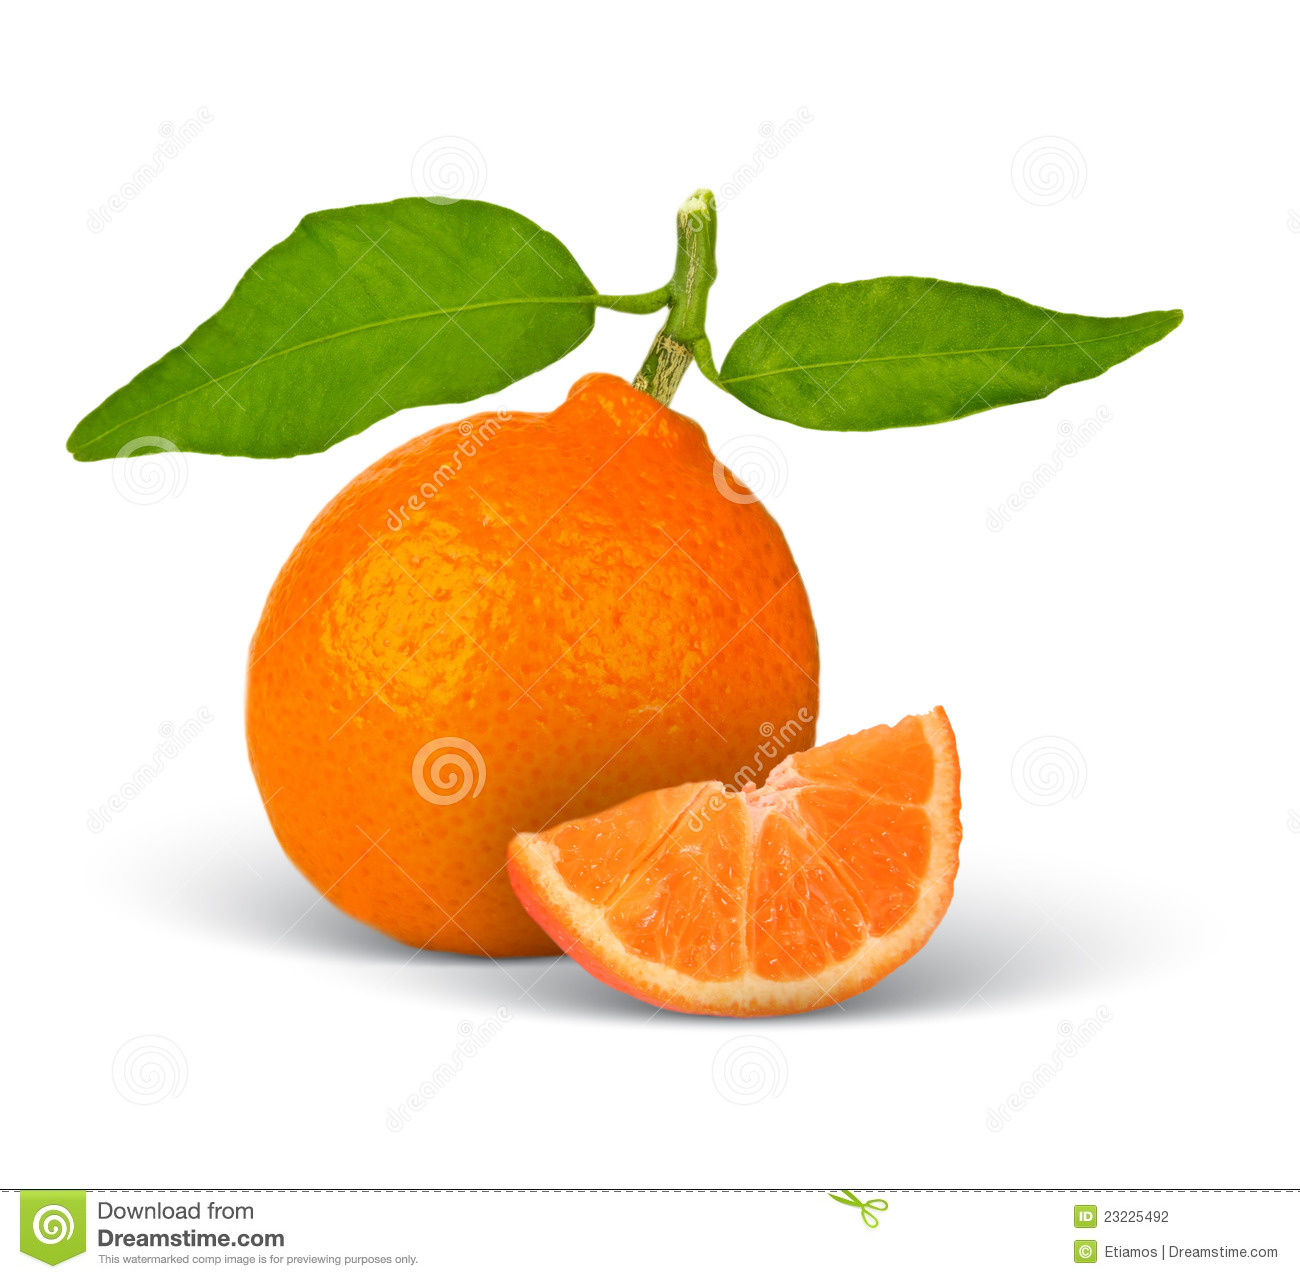 Tangerine with leaves and slice isolated on white.